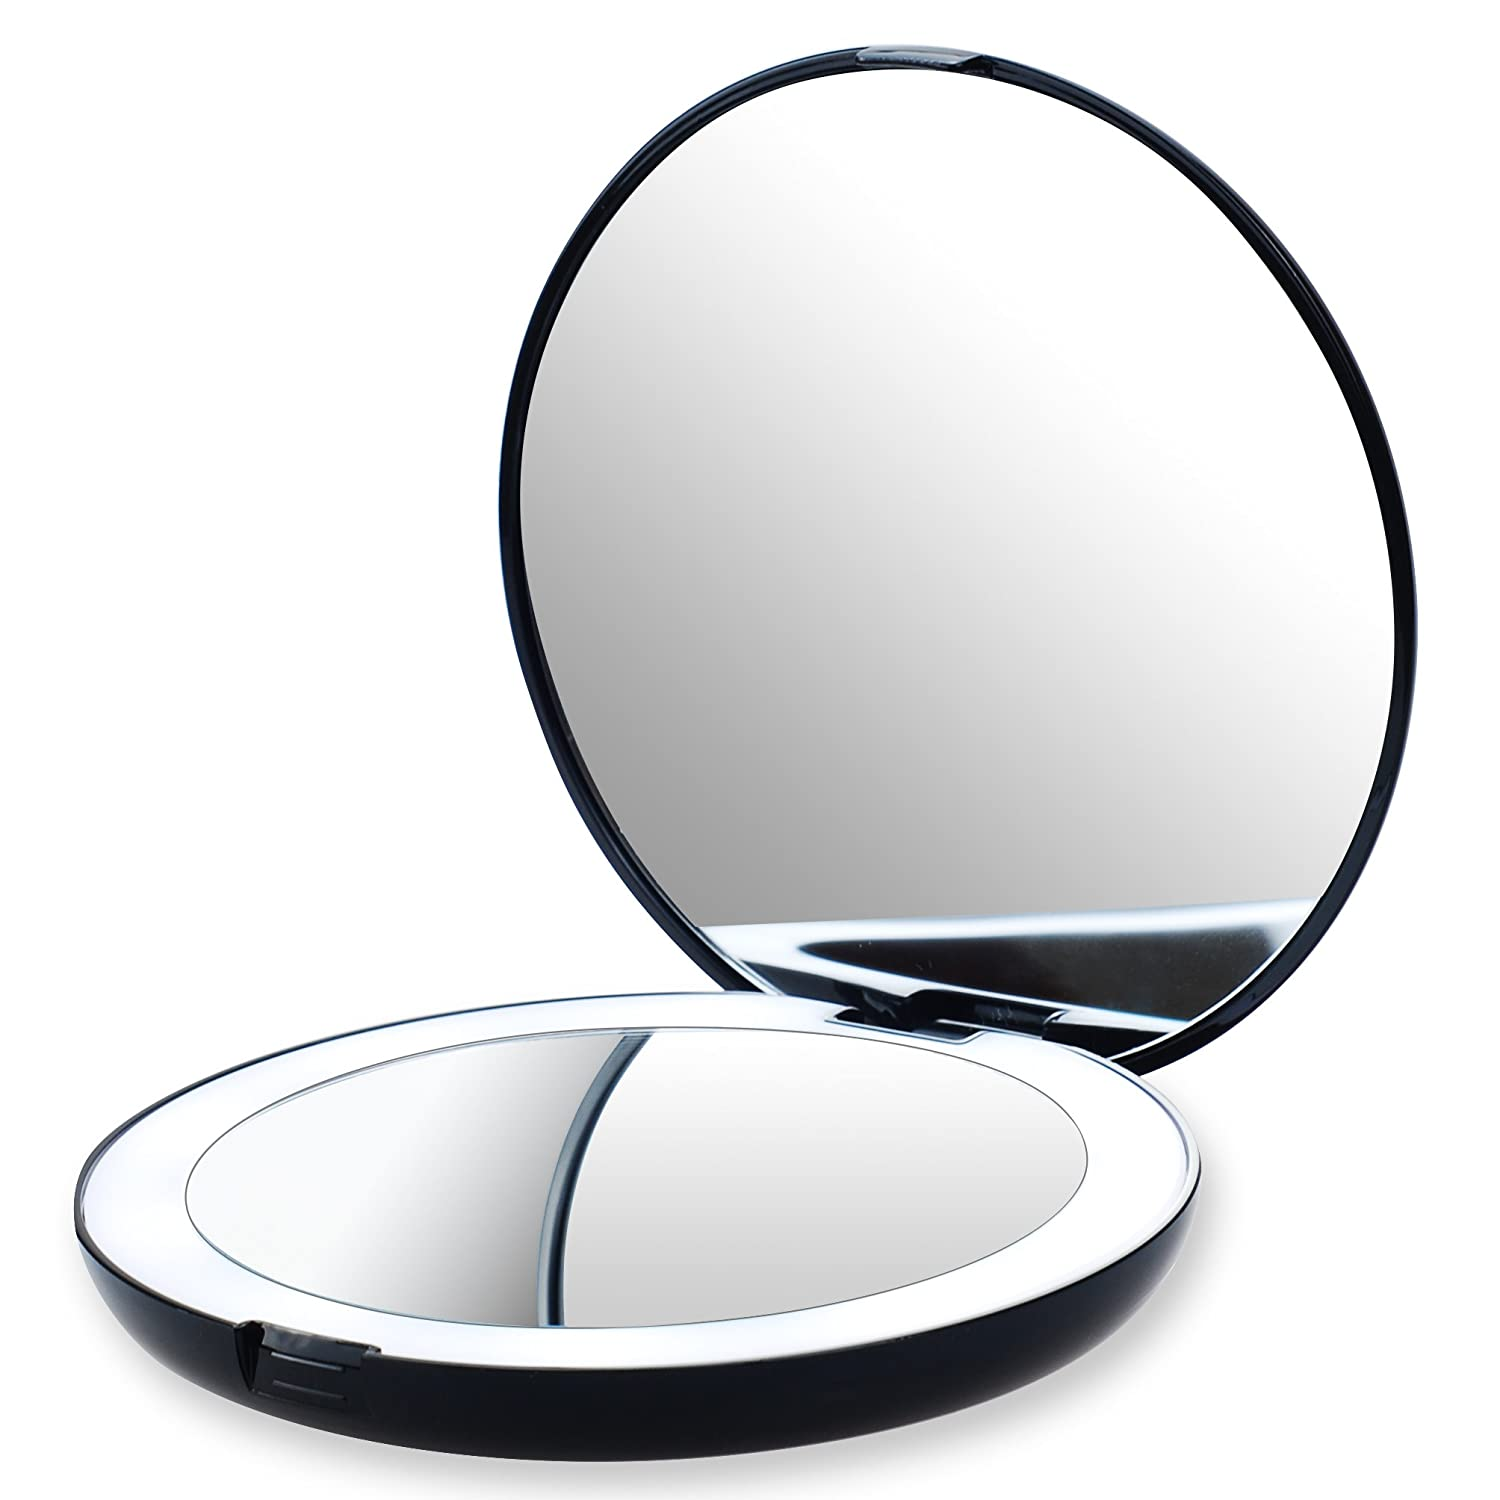 LED Lighted Travel Makeup Mirror, 1x/10x Magnification - Compact, Daylight LED, Portable Folding Travel Mirror